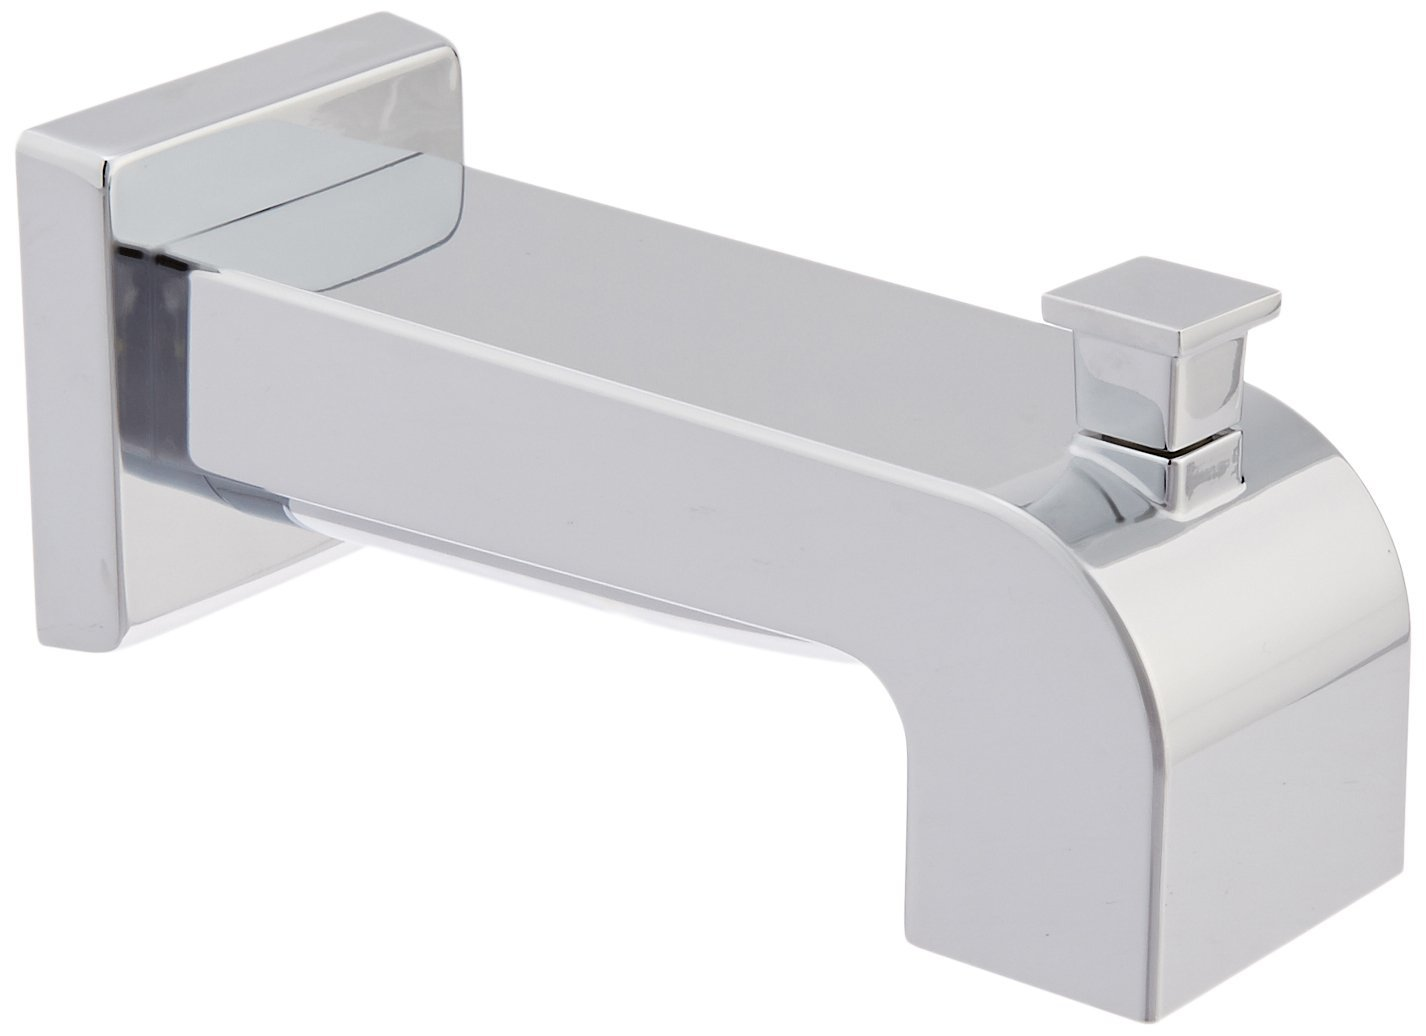 Delta Faucet RP53419 Arzo Tub Spout with Pull-Up Diverter, Chrome